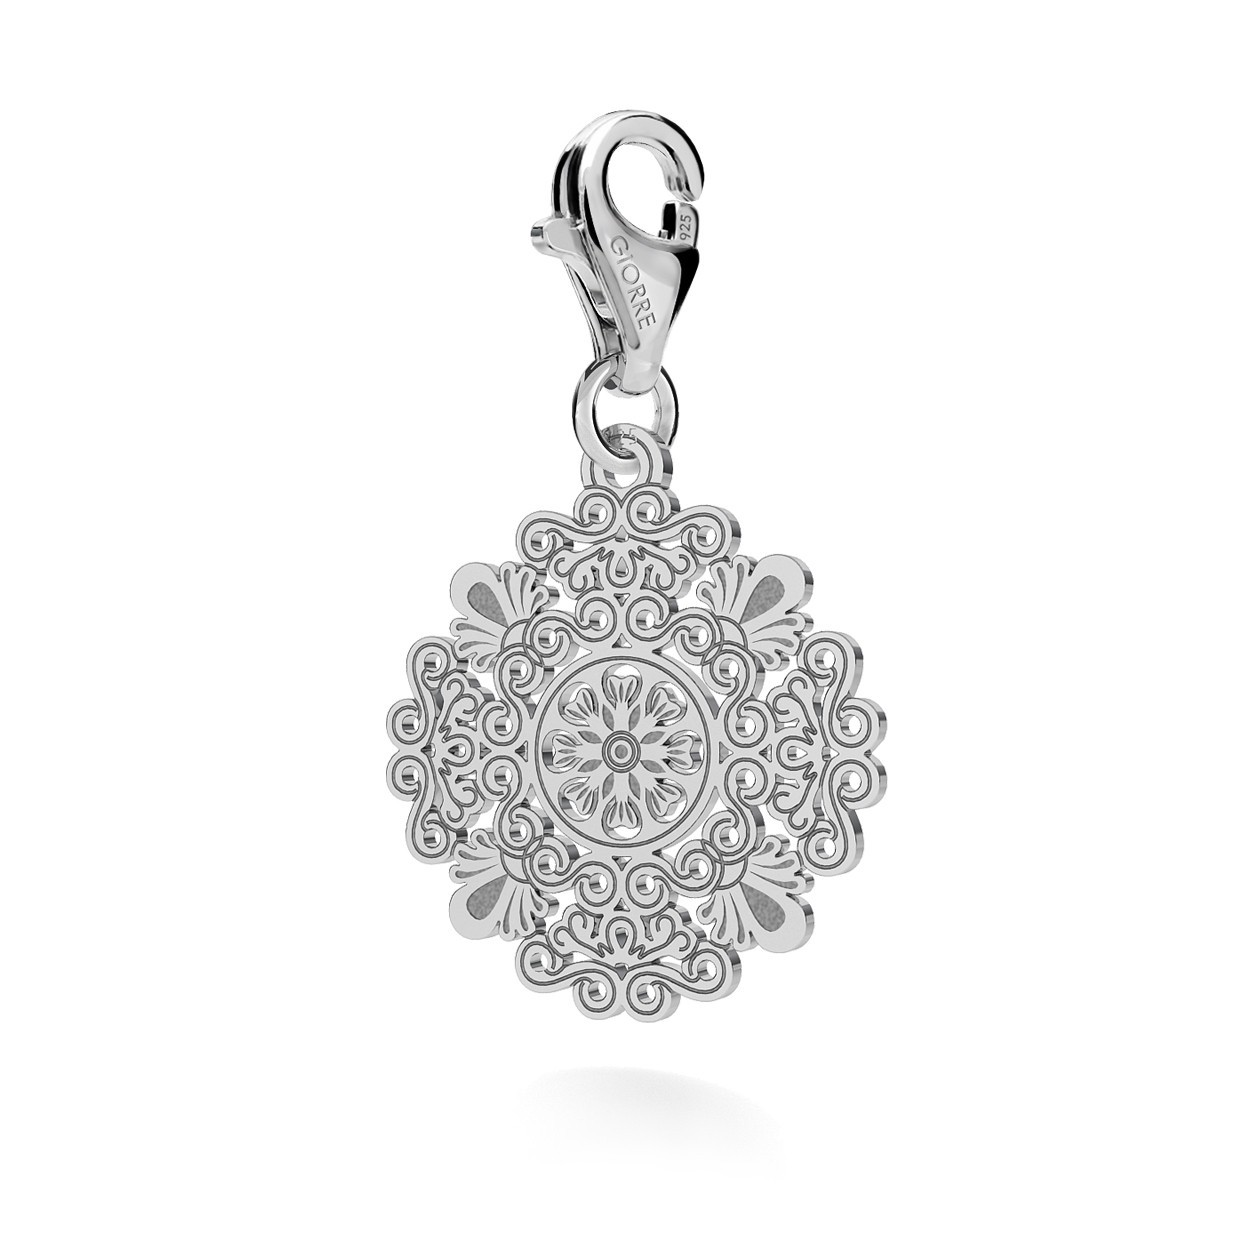 CHARM 105, OPENWORK BOHO ROSETTE, STERLING SILVER (925) RHODIUM OR GOLD PLATED